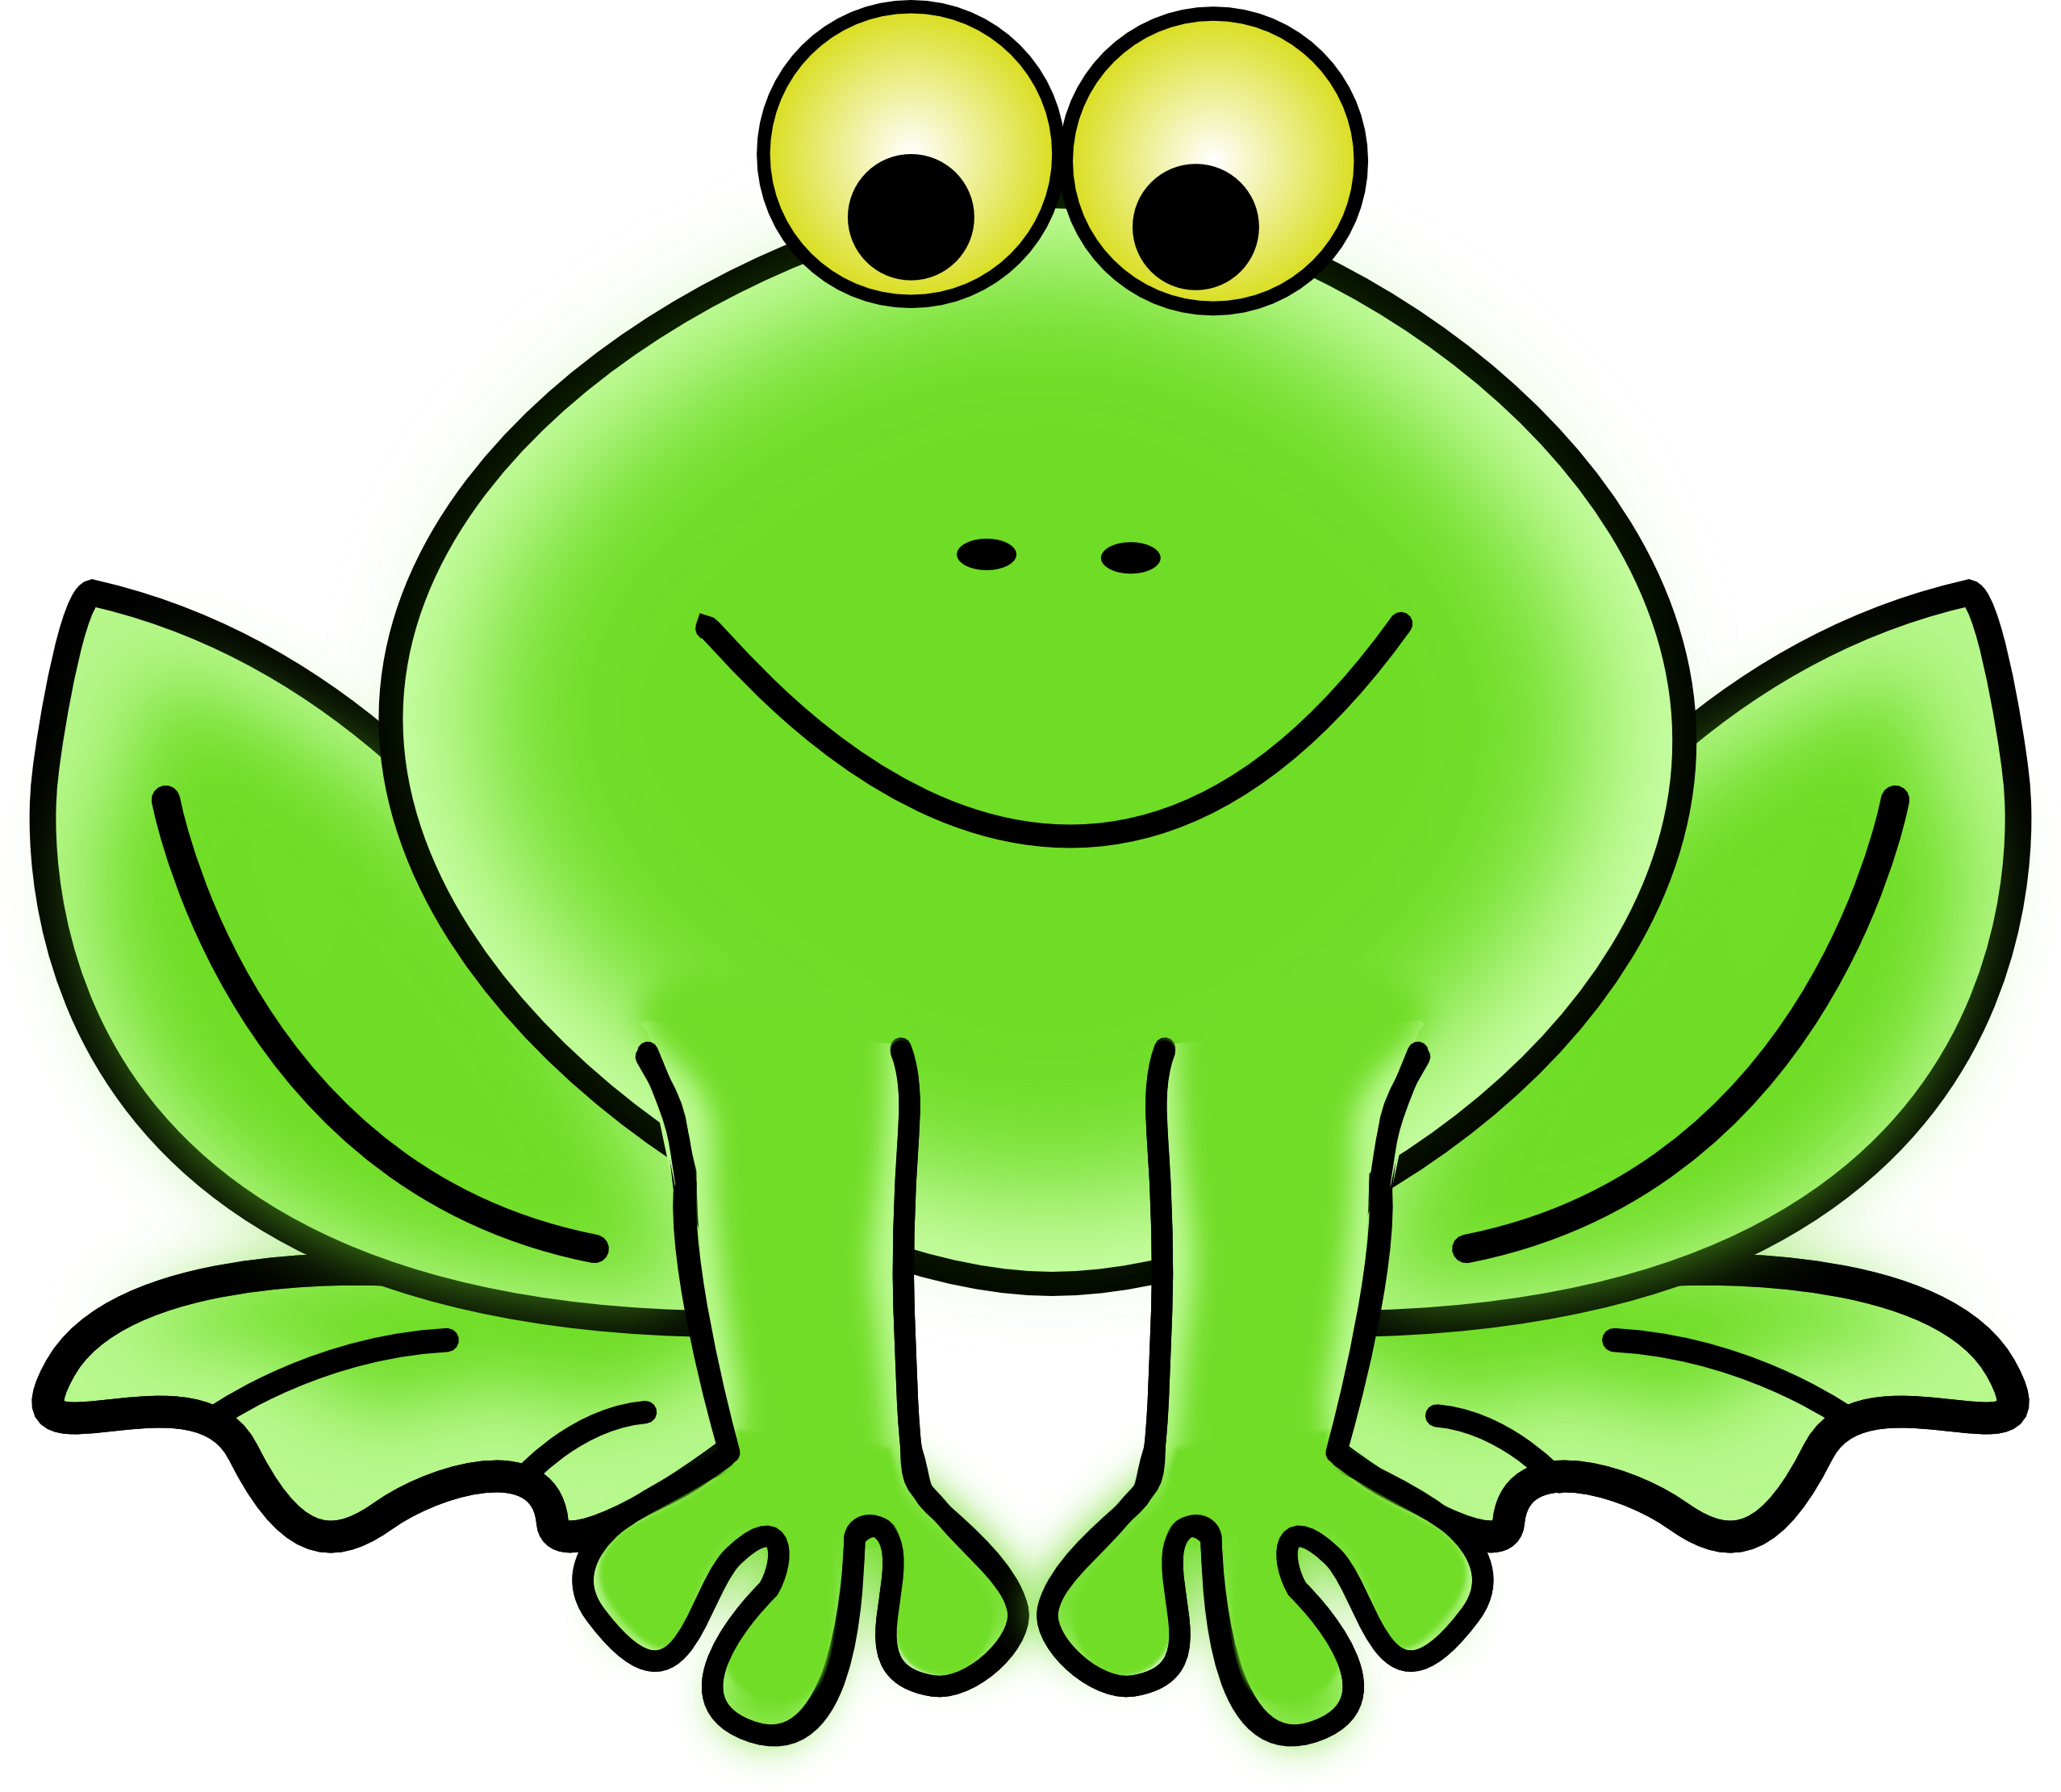 Clip art for teachers. Clipart halloween frog